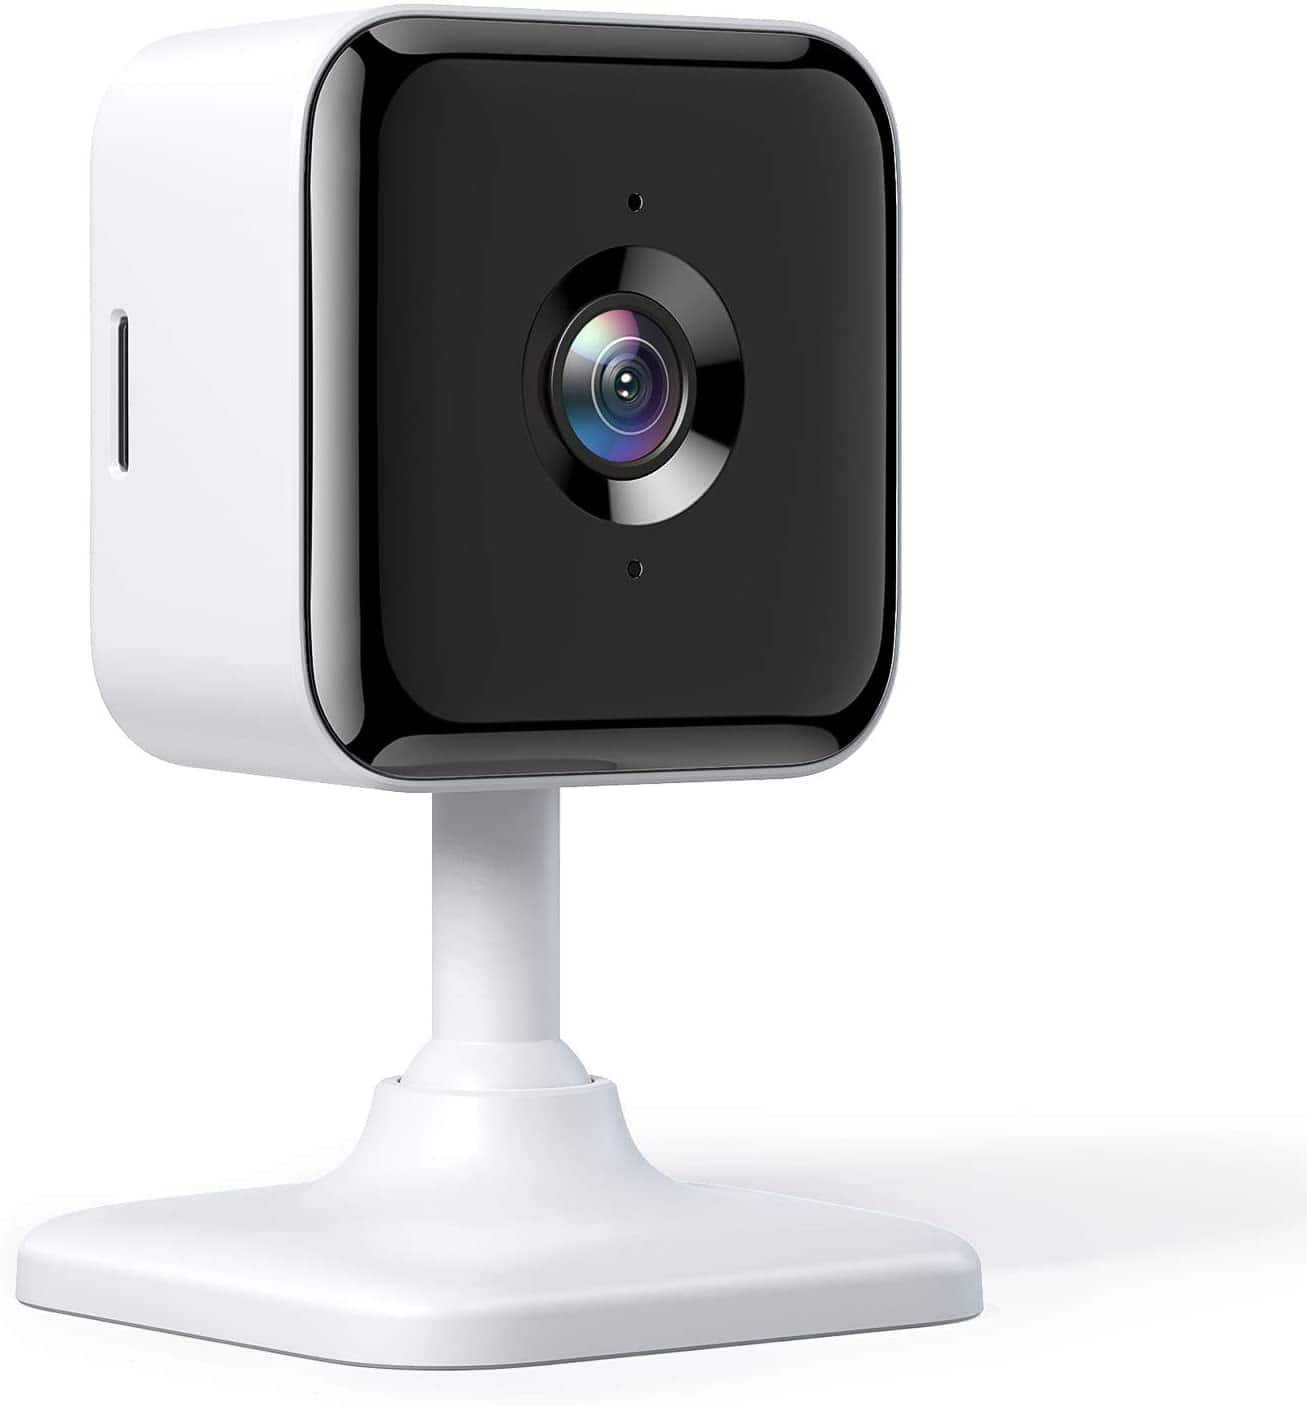 1080P FHD Indoor Wi-Fi Smart Camera $15.99